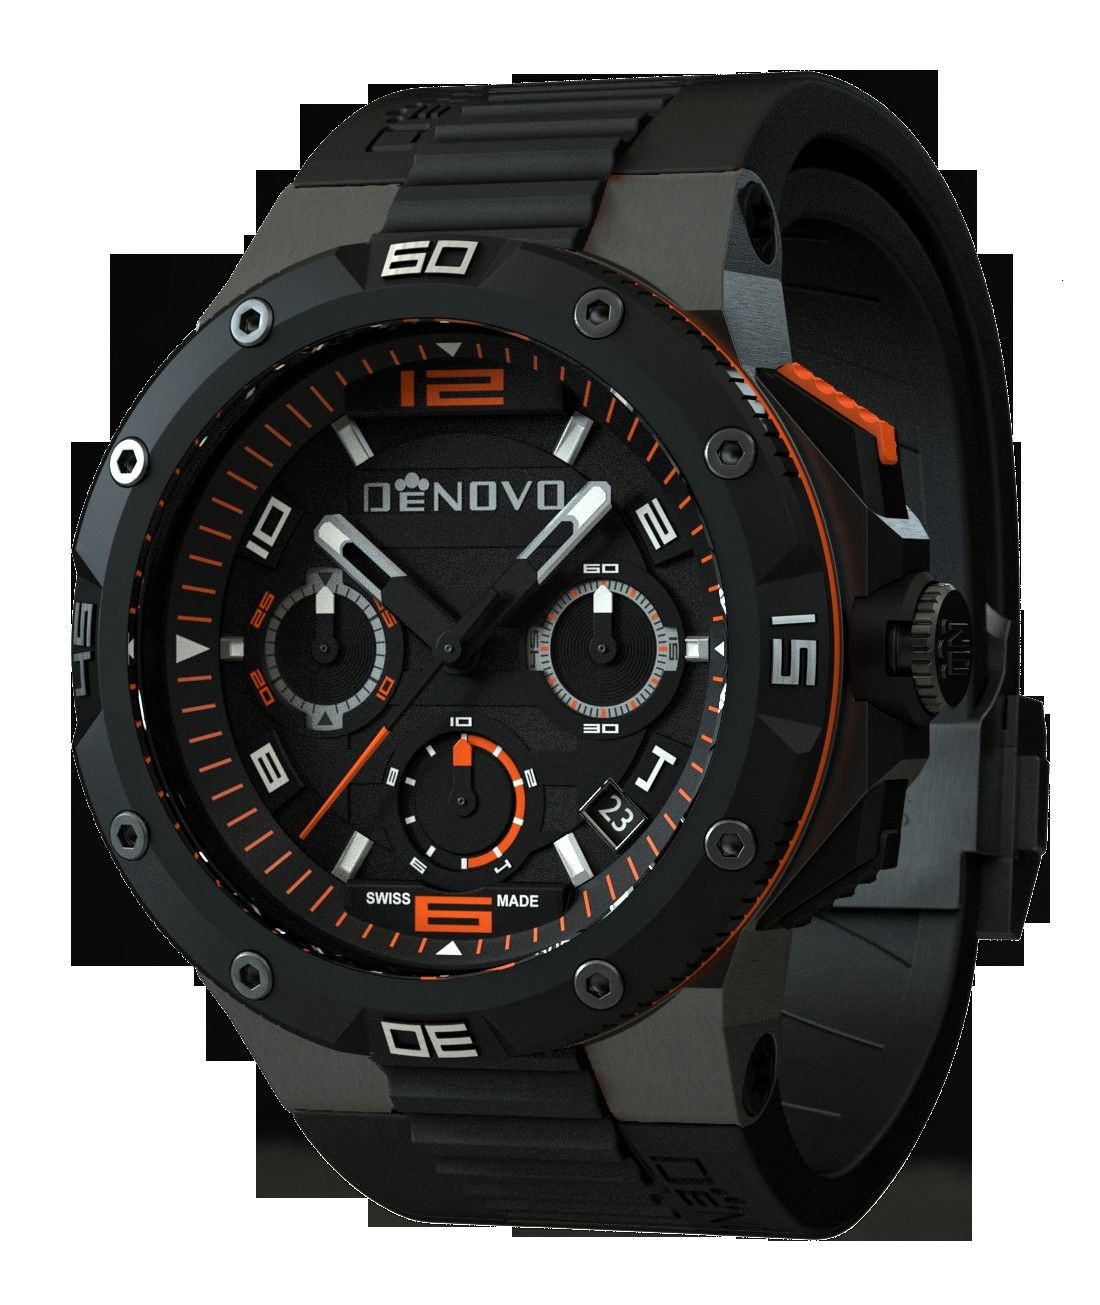 DN202084NON Mens Watch Gunmetal Case Black Dial Orange Accents Black Rubber Strap84nonDeNovo DN202084NON Mens Watch Gunmetal Case Black Dial Orange Accents Black Rubber S...